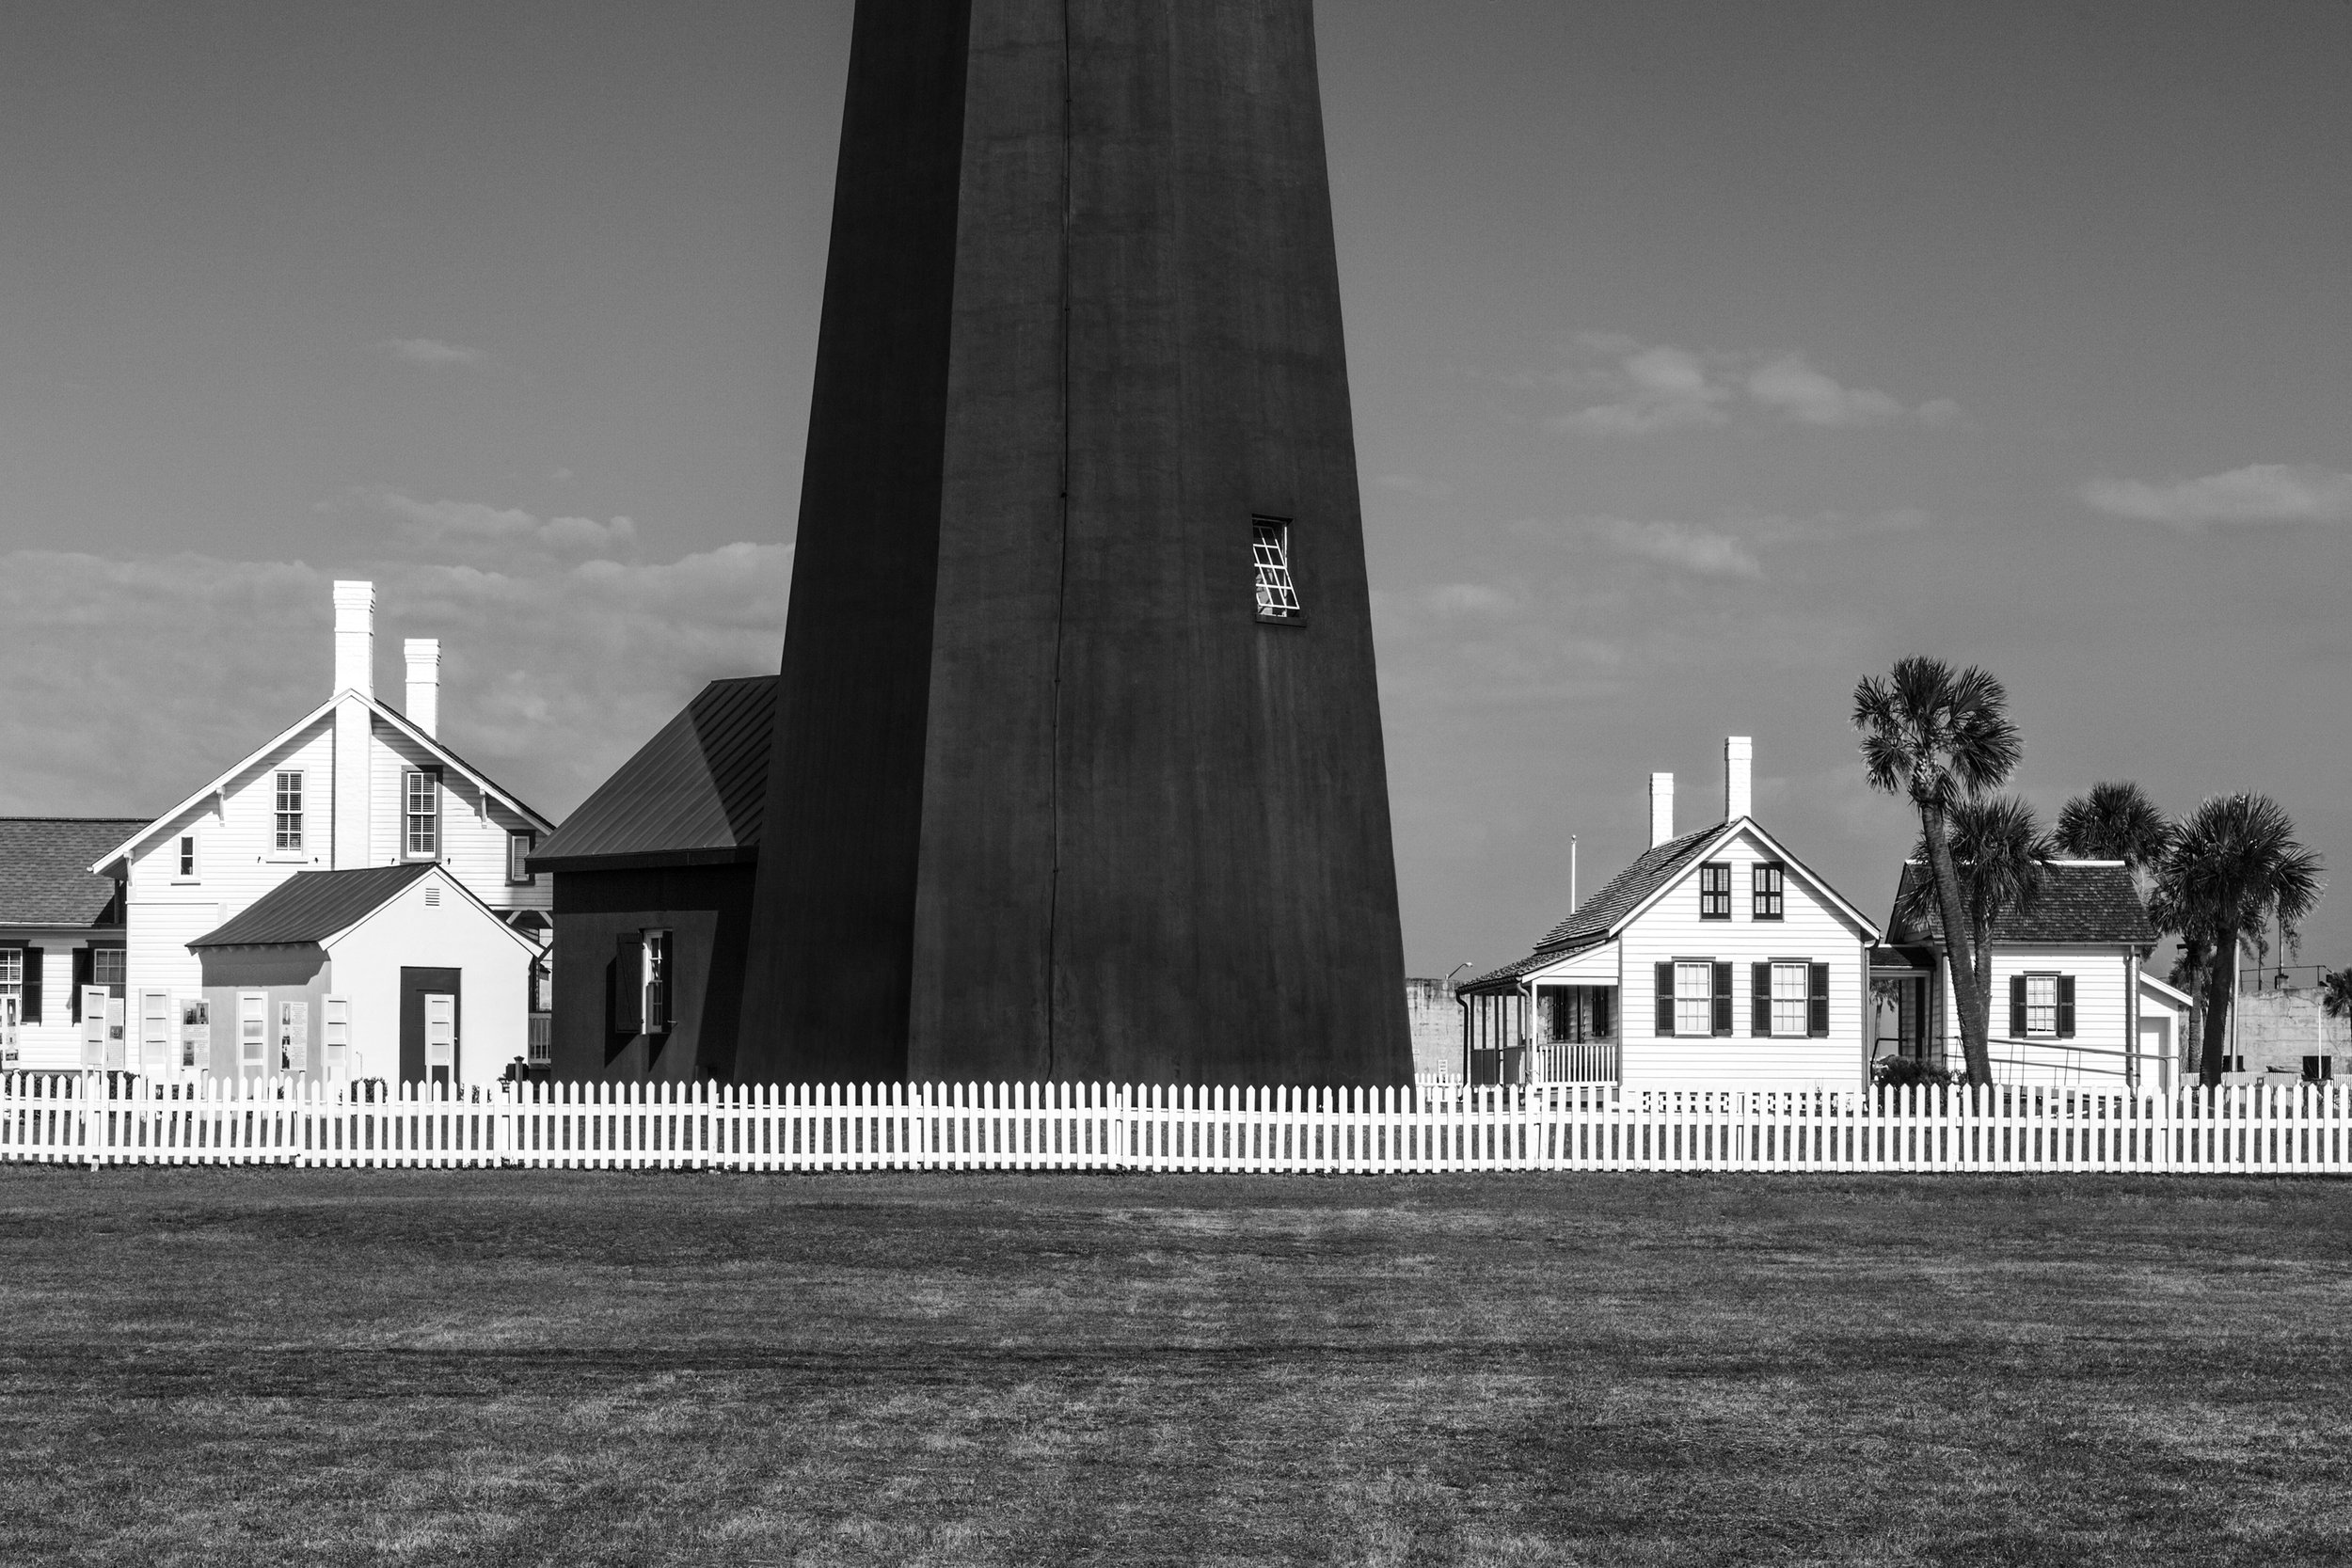 Tybee Island Lighthouse Tybee Island GA Tim Barnwell photographer